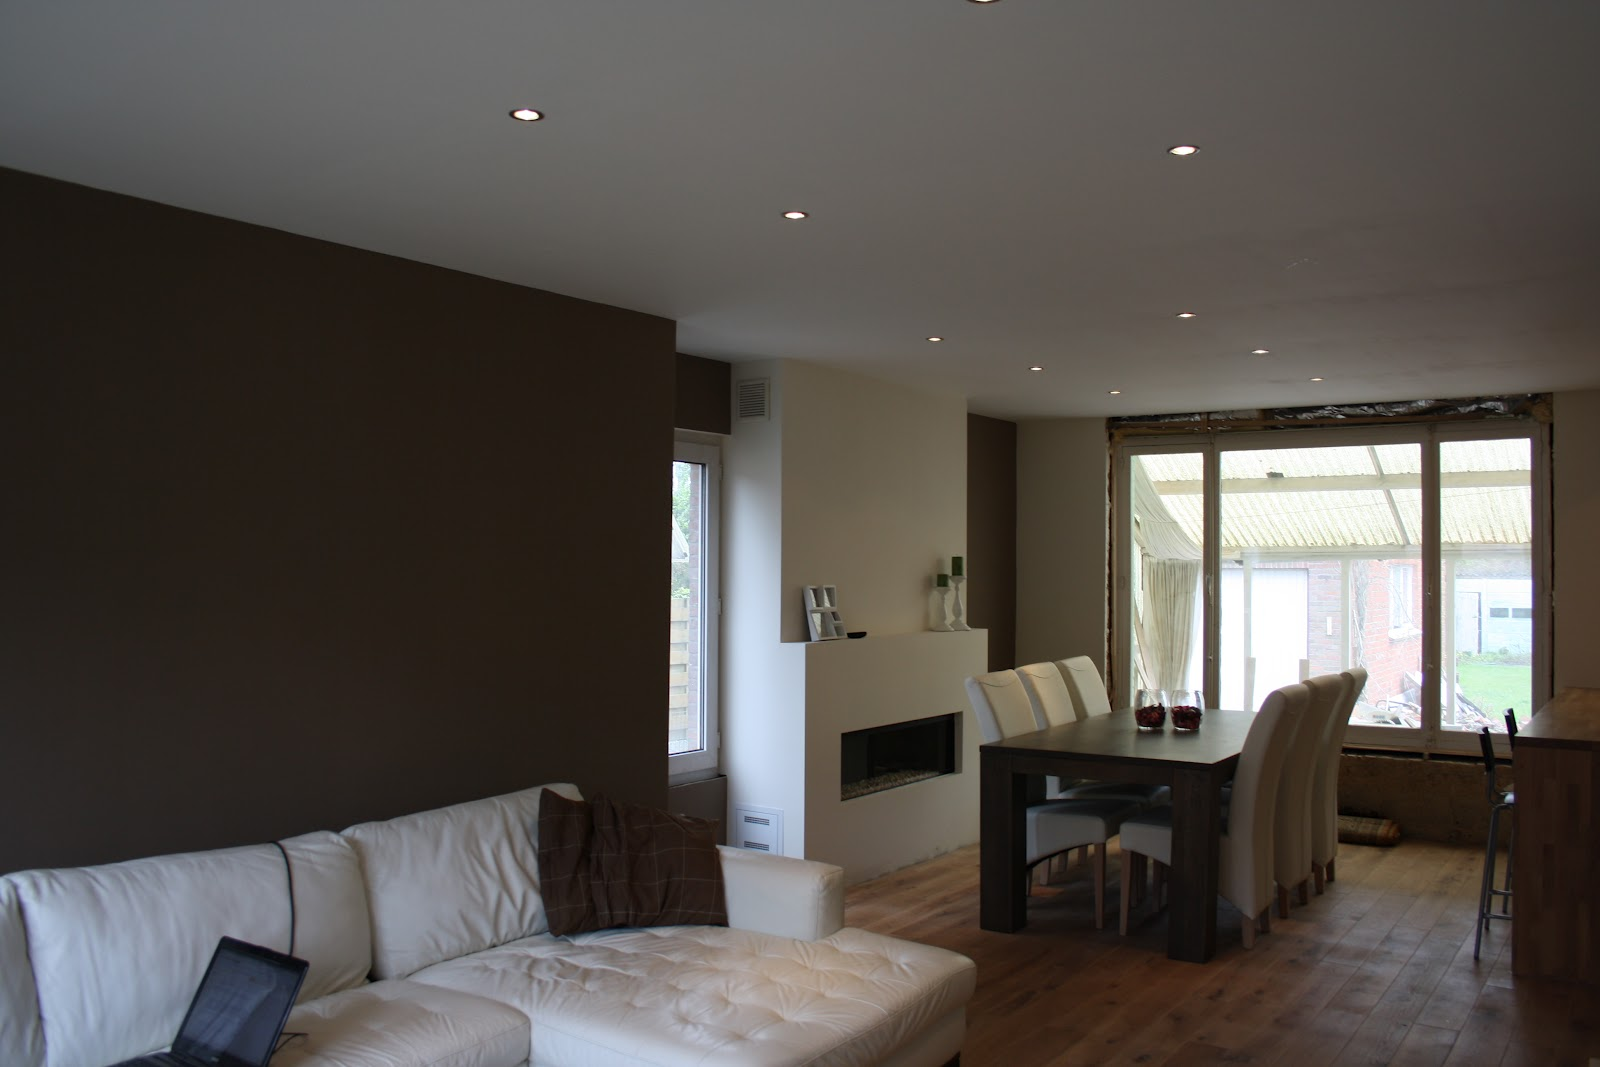 Opbouwspots Keuken Ikea Keuken Spotjes Fabulous Brick In The Wall Indox With